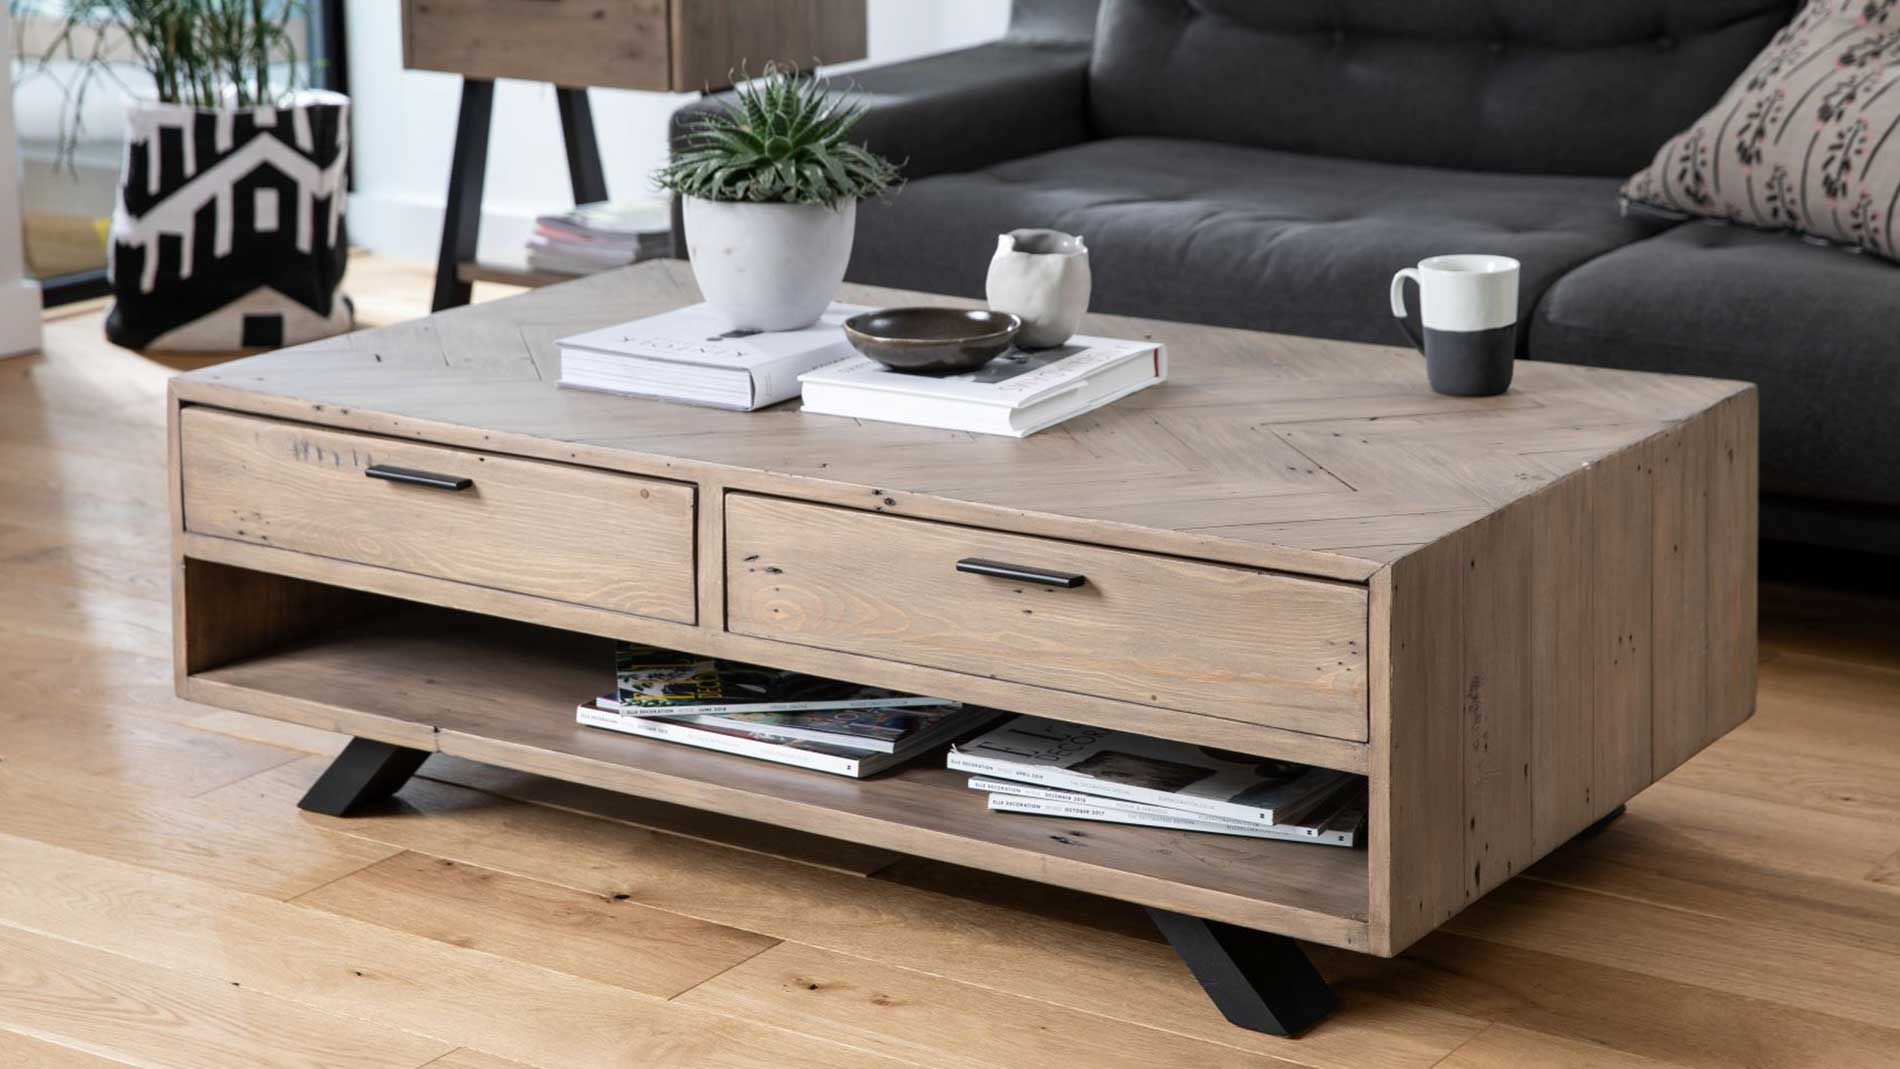 SAFARI COFFEE TABLE - L120cm x D70cm x H40cm